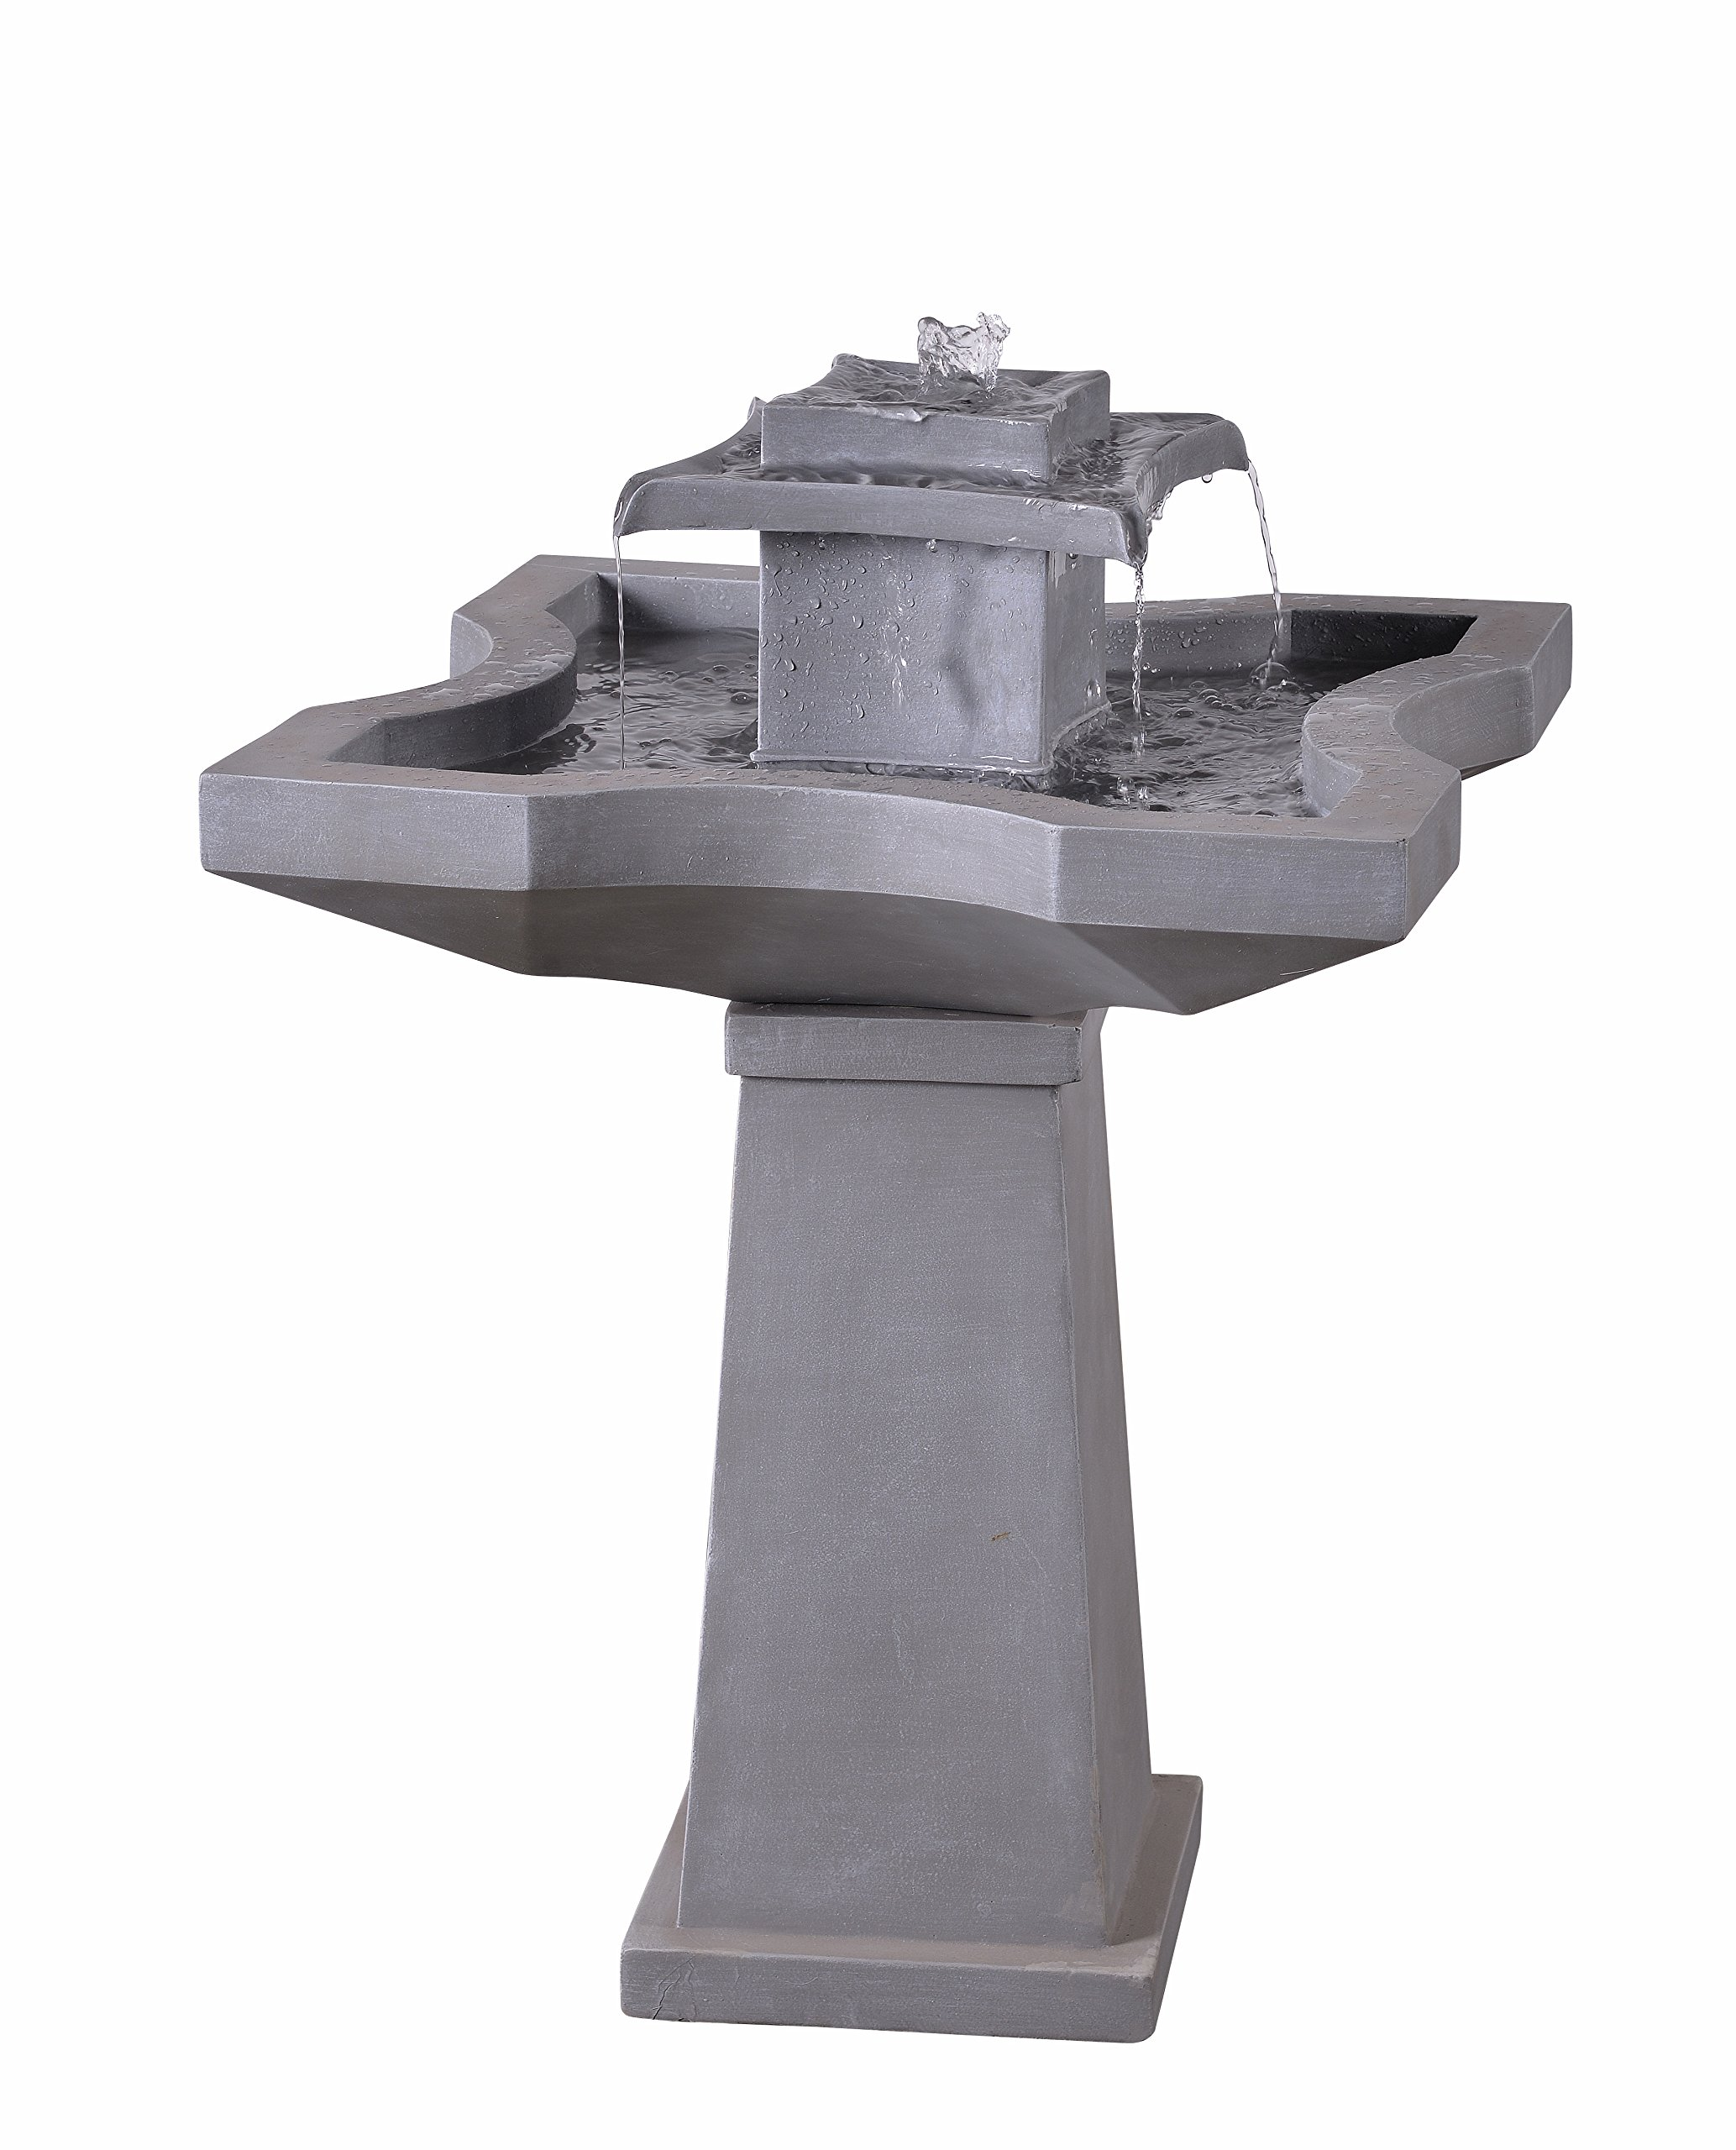 Kenroy Home 51057CON Quad Outdoor Floor Fountain, 32 Inch Height, Concrete Finish - FILL LINE:  Allows you to easily know when the water is running to low to keep the pump covered DIMENSIONS: 31 inch Height, 22 inch width, 22 inch Ext PUMP PERFORMANCE: Our pumps feature industry-leading motors and components, tuned for optimal performance - patio, fountains, outdoor-decor - 8189pOlCh L -